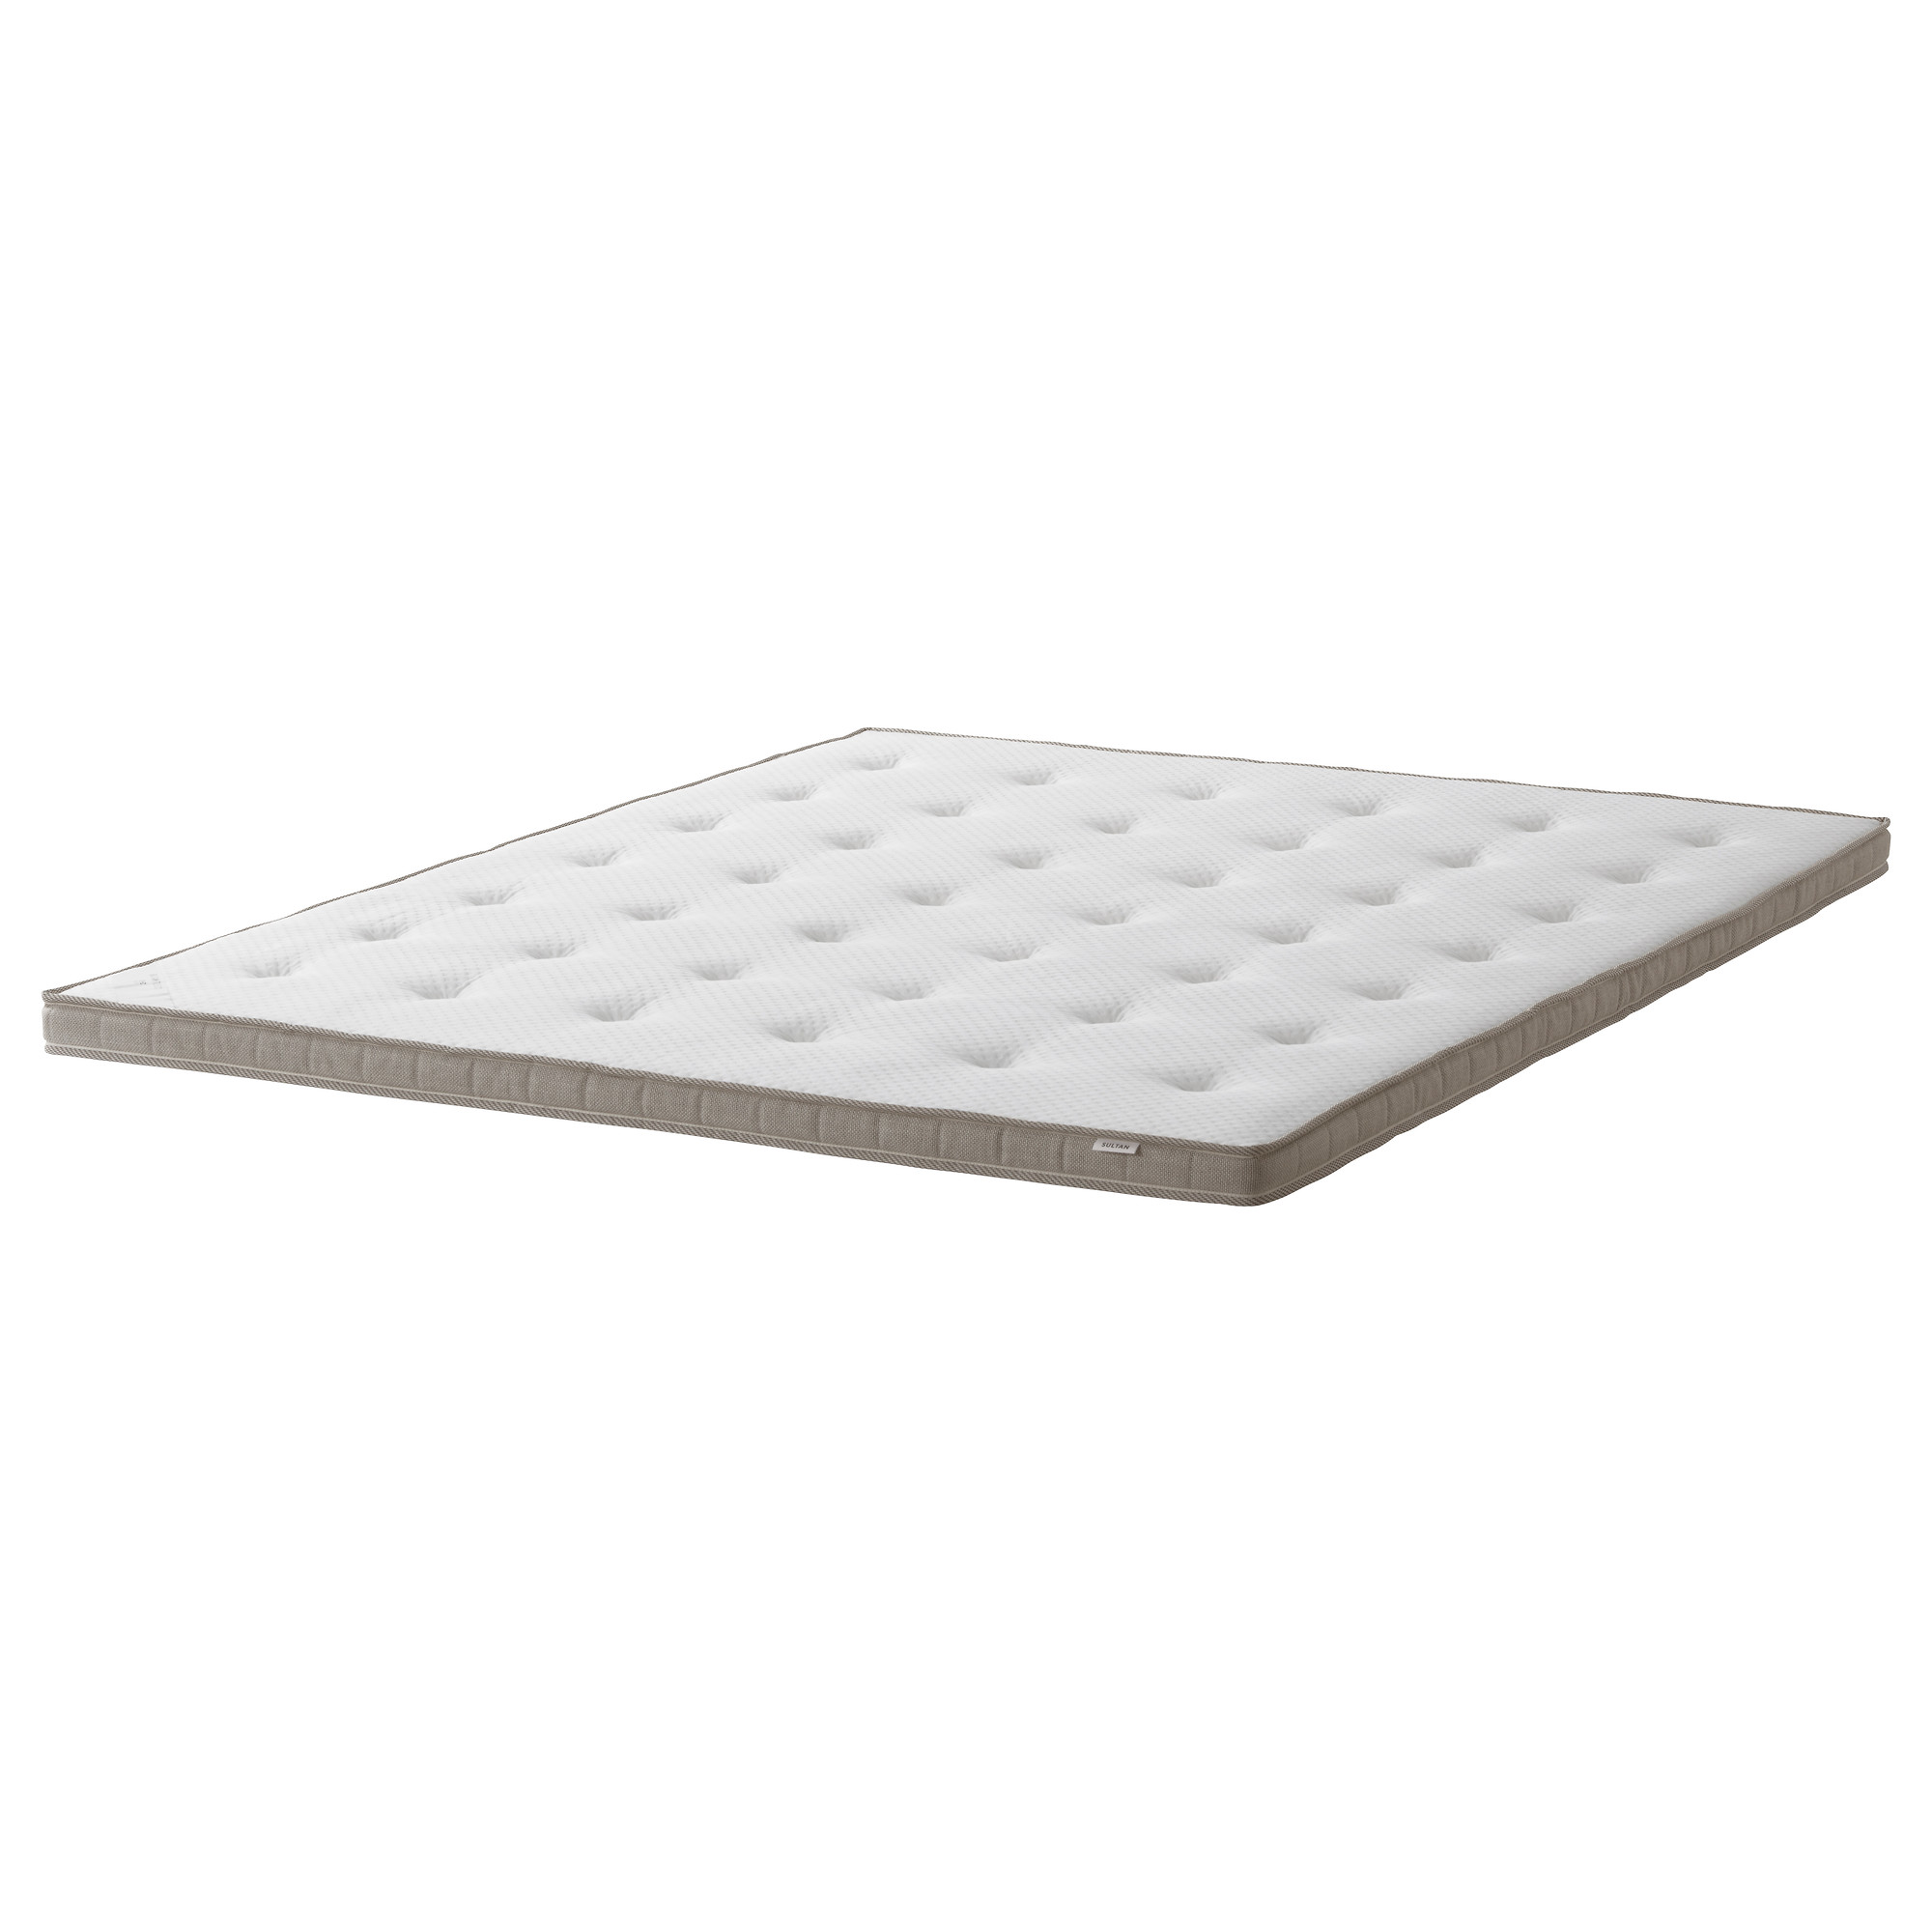 Thin Mattress Topper Ikea Mattress Topper Create A Tiny Layer For Ultimate